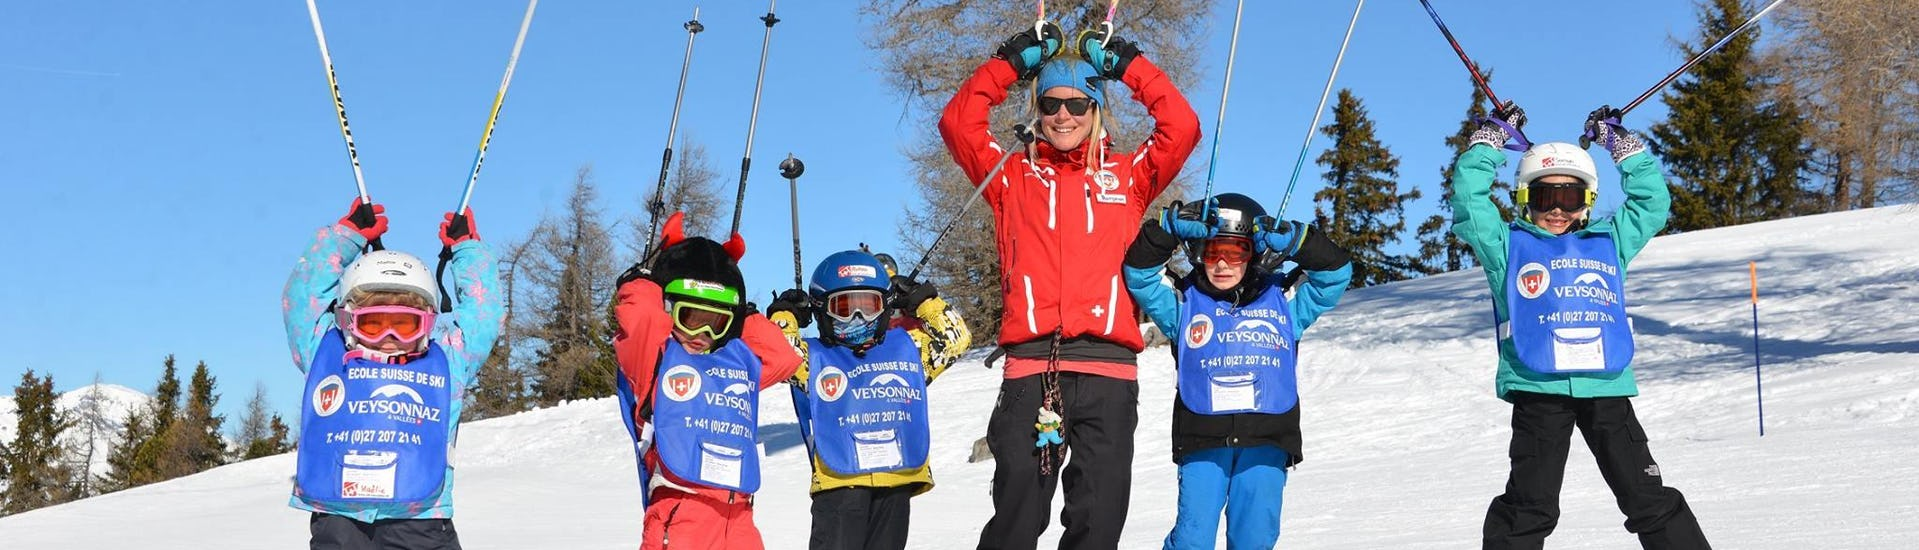 Ski Lessons for Kids (6-12 years) - Morning - Advanced